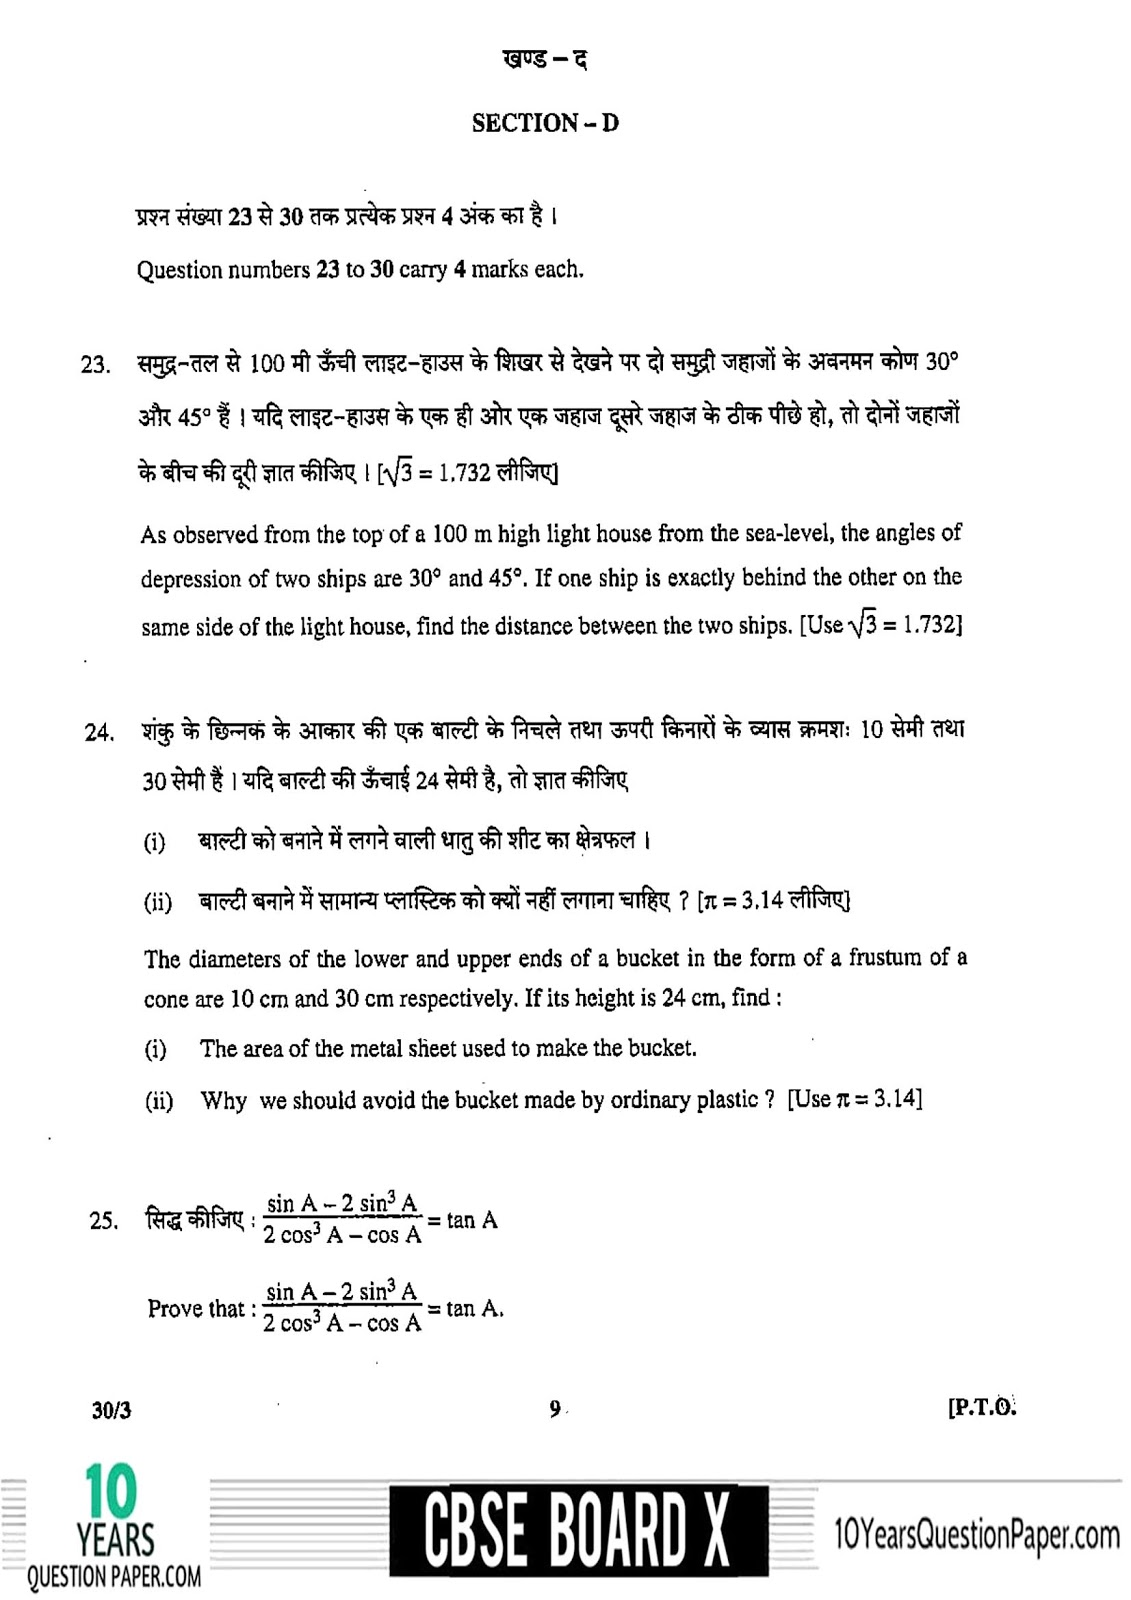 CBSE Board 2018 Maths Question paper Class 10 Page-09